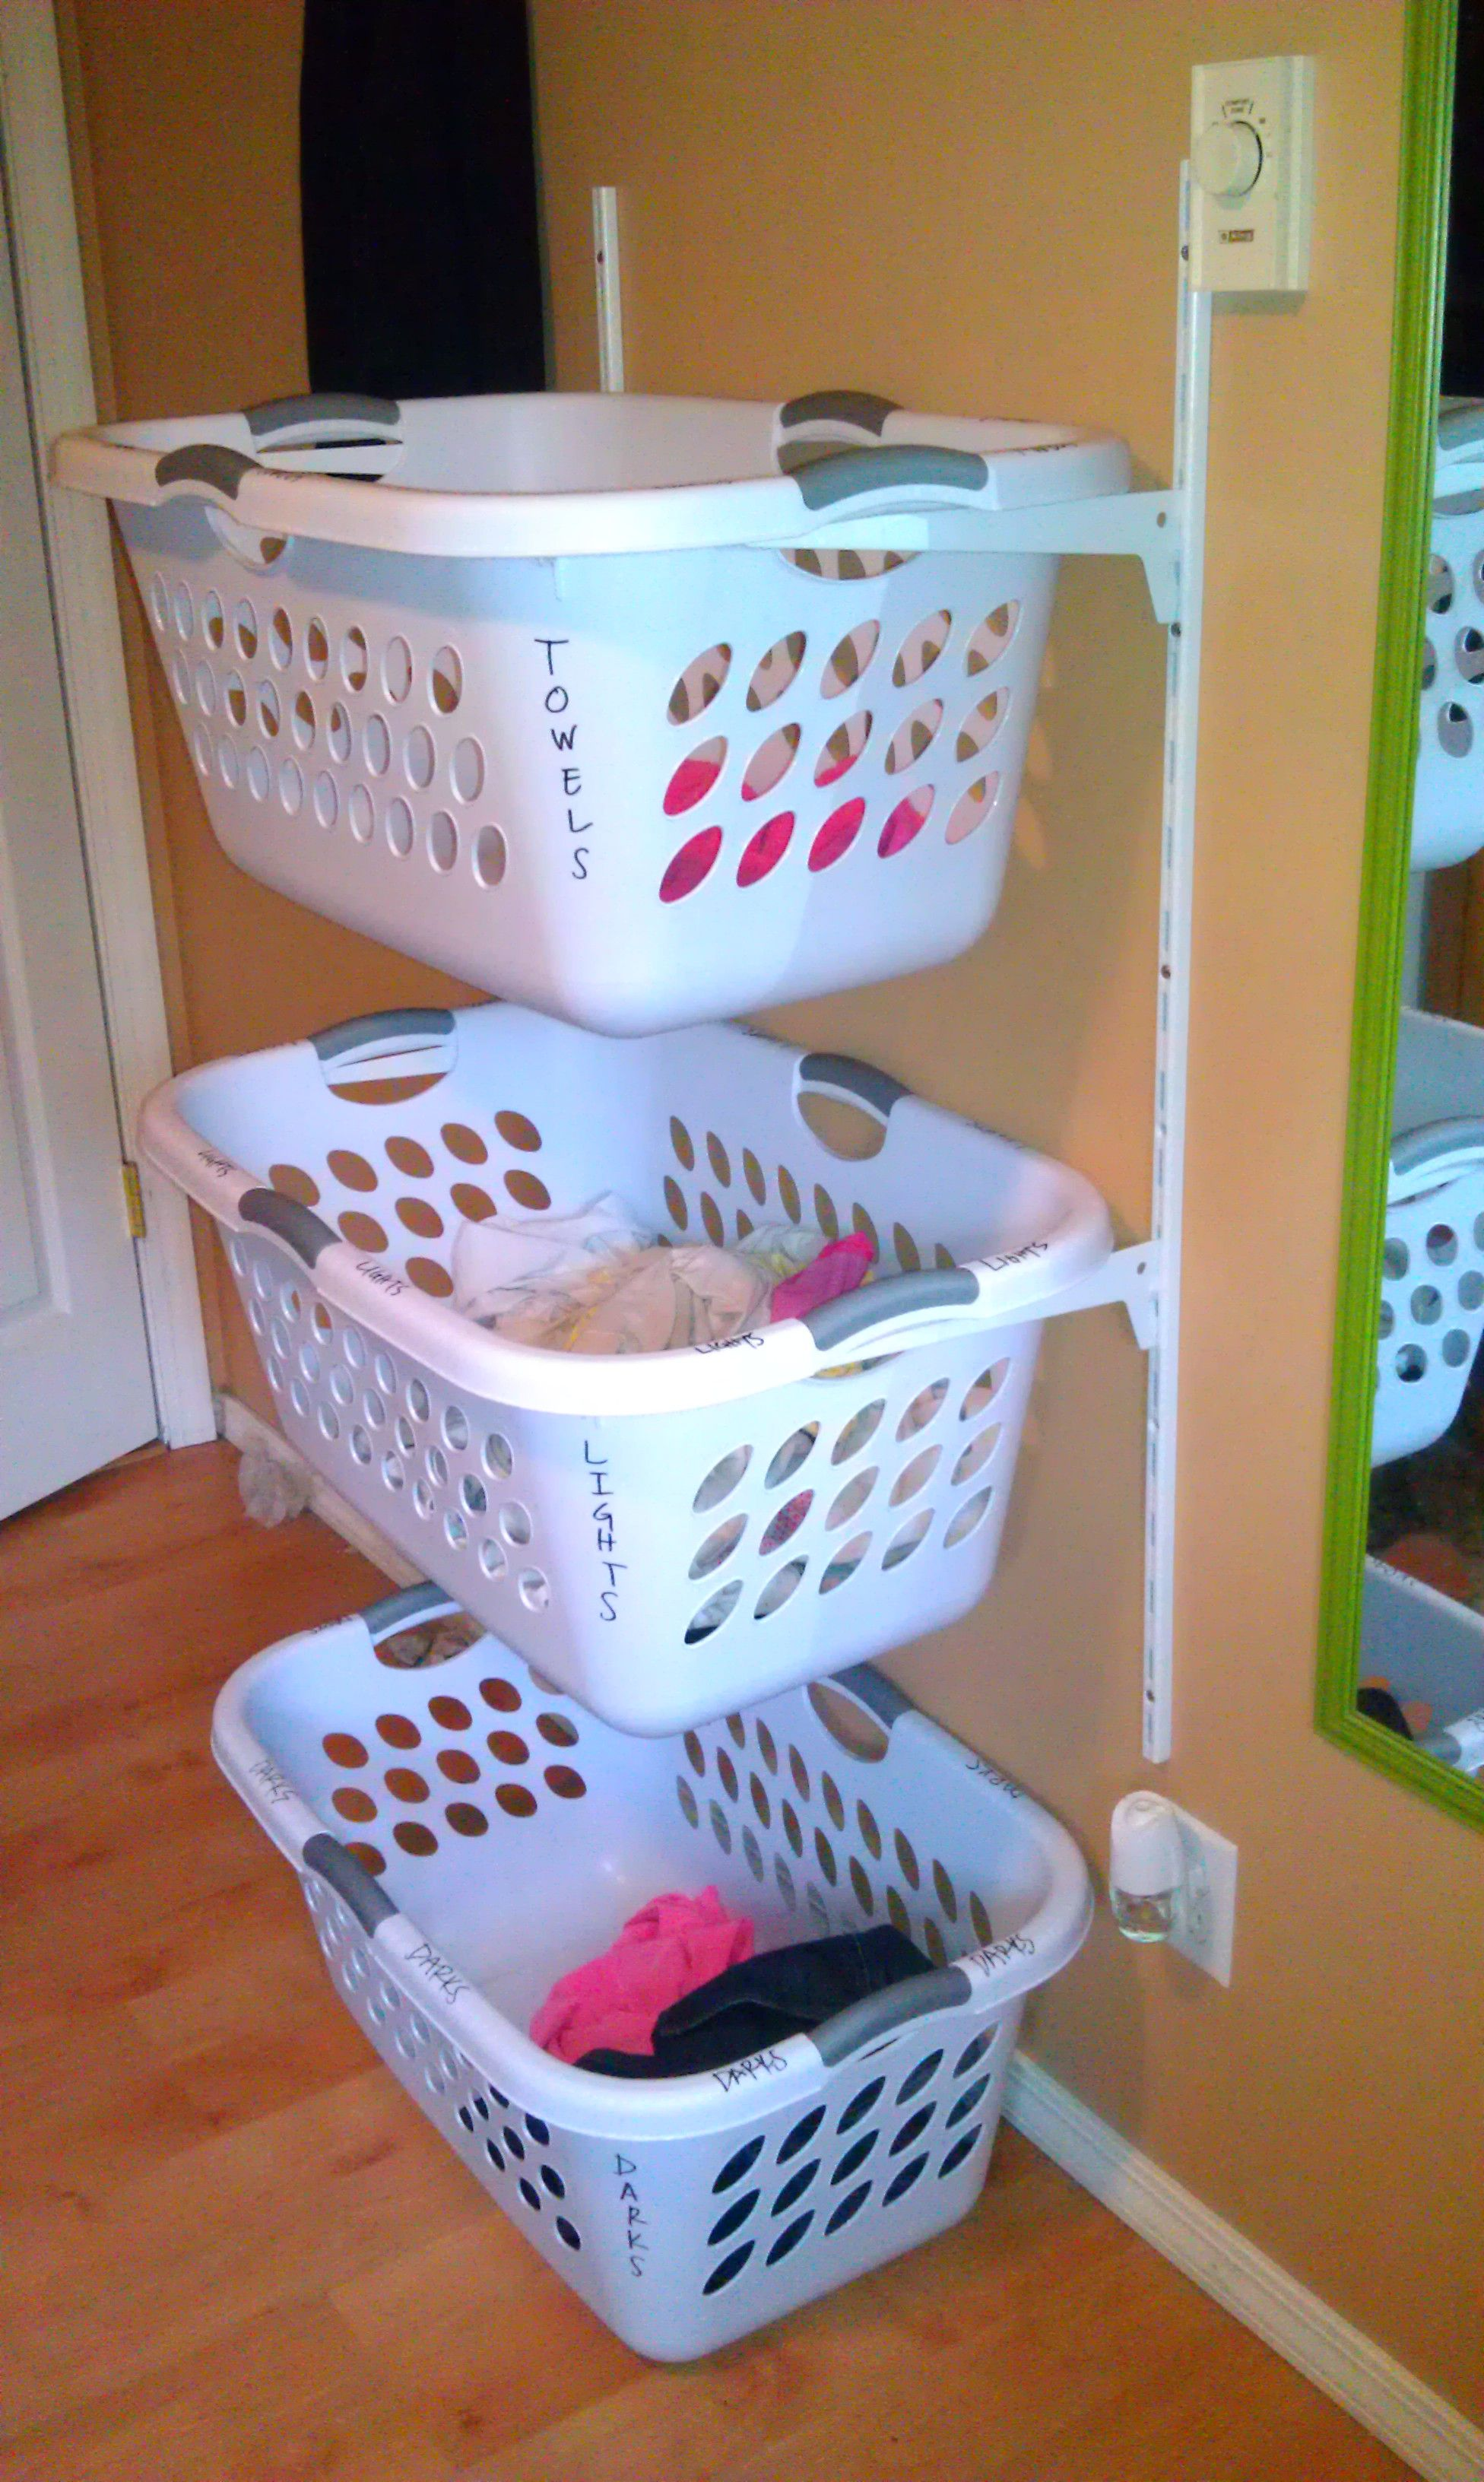 Stacking Laundry Baskets to organize your laundry room